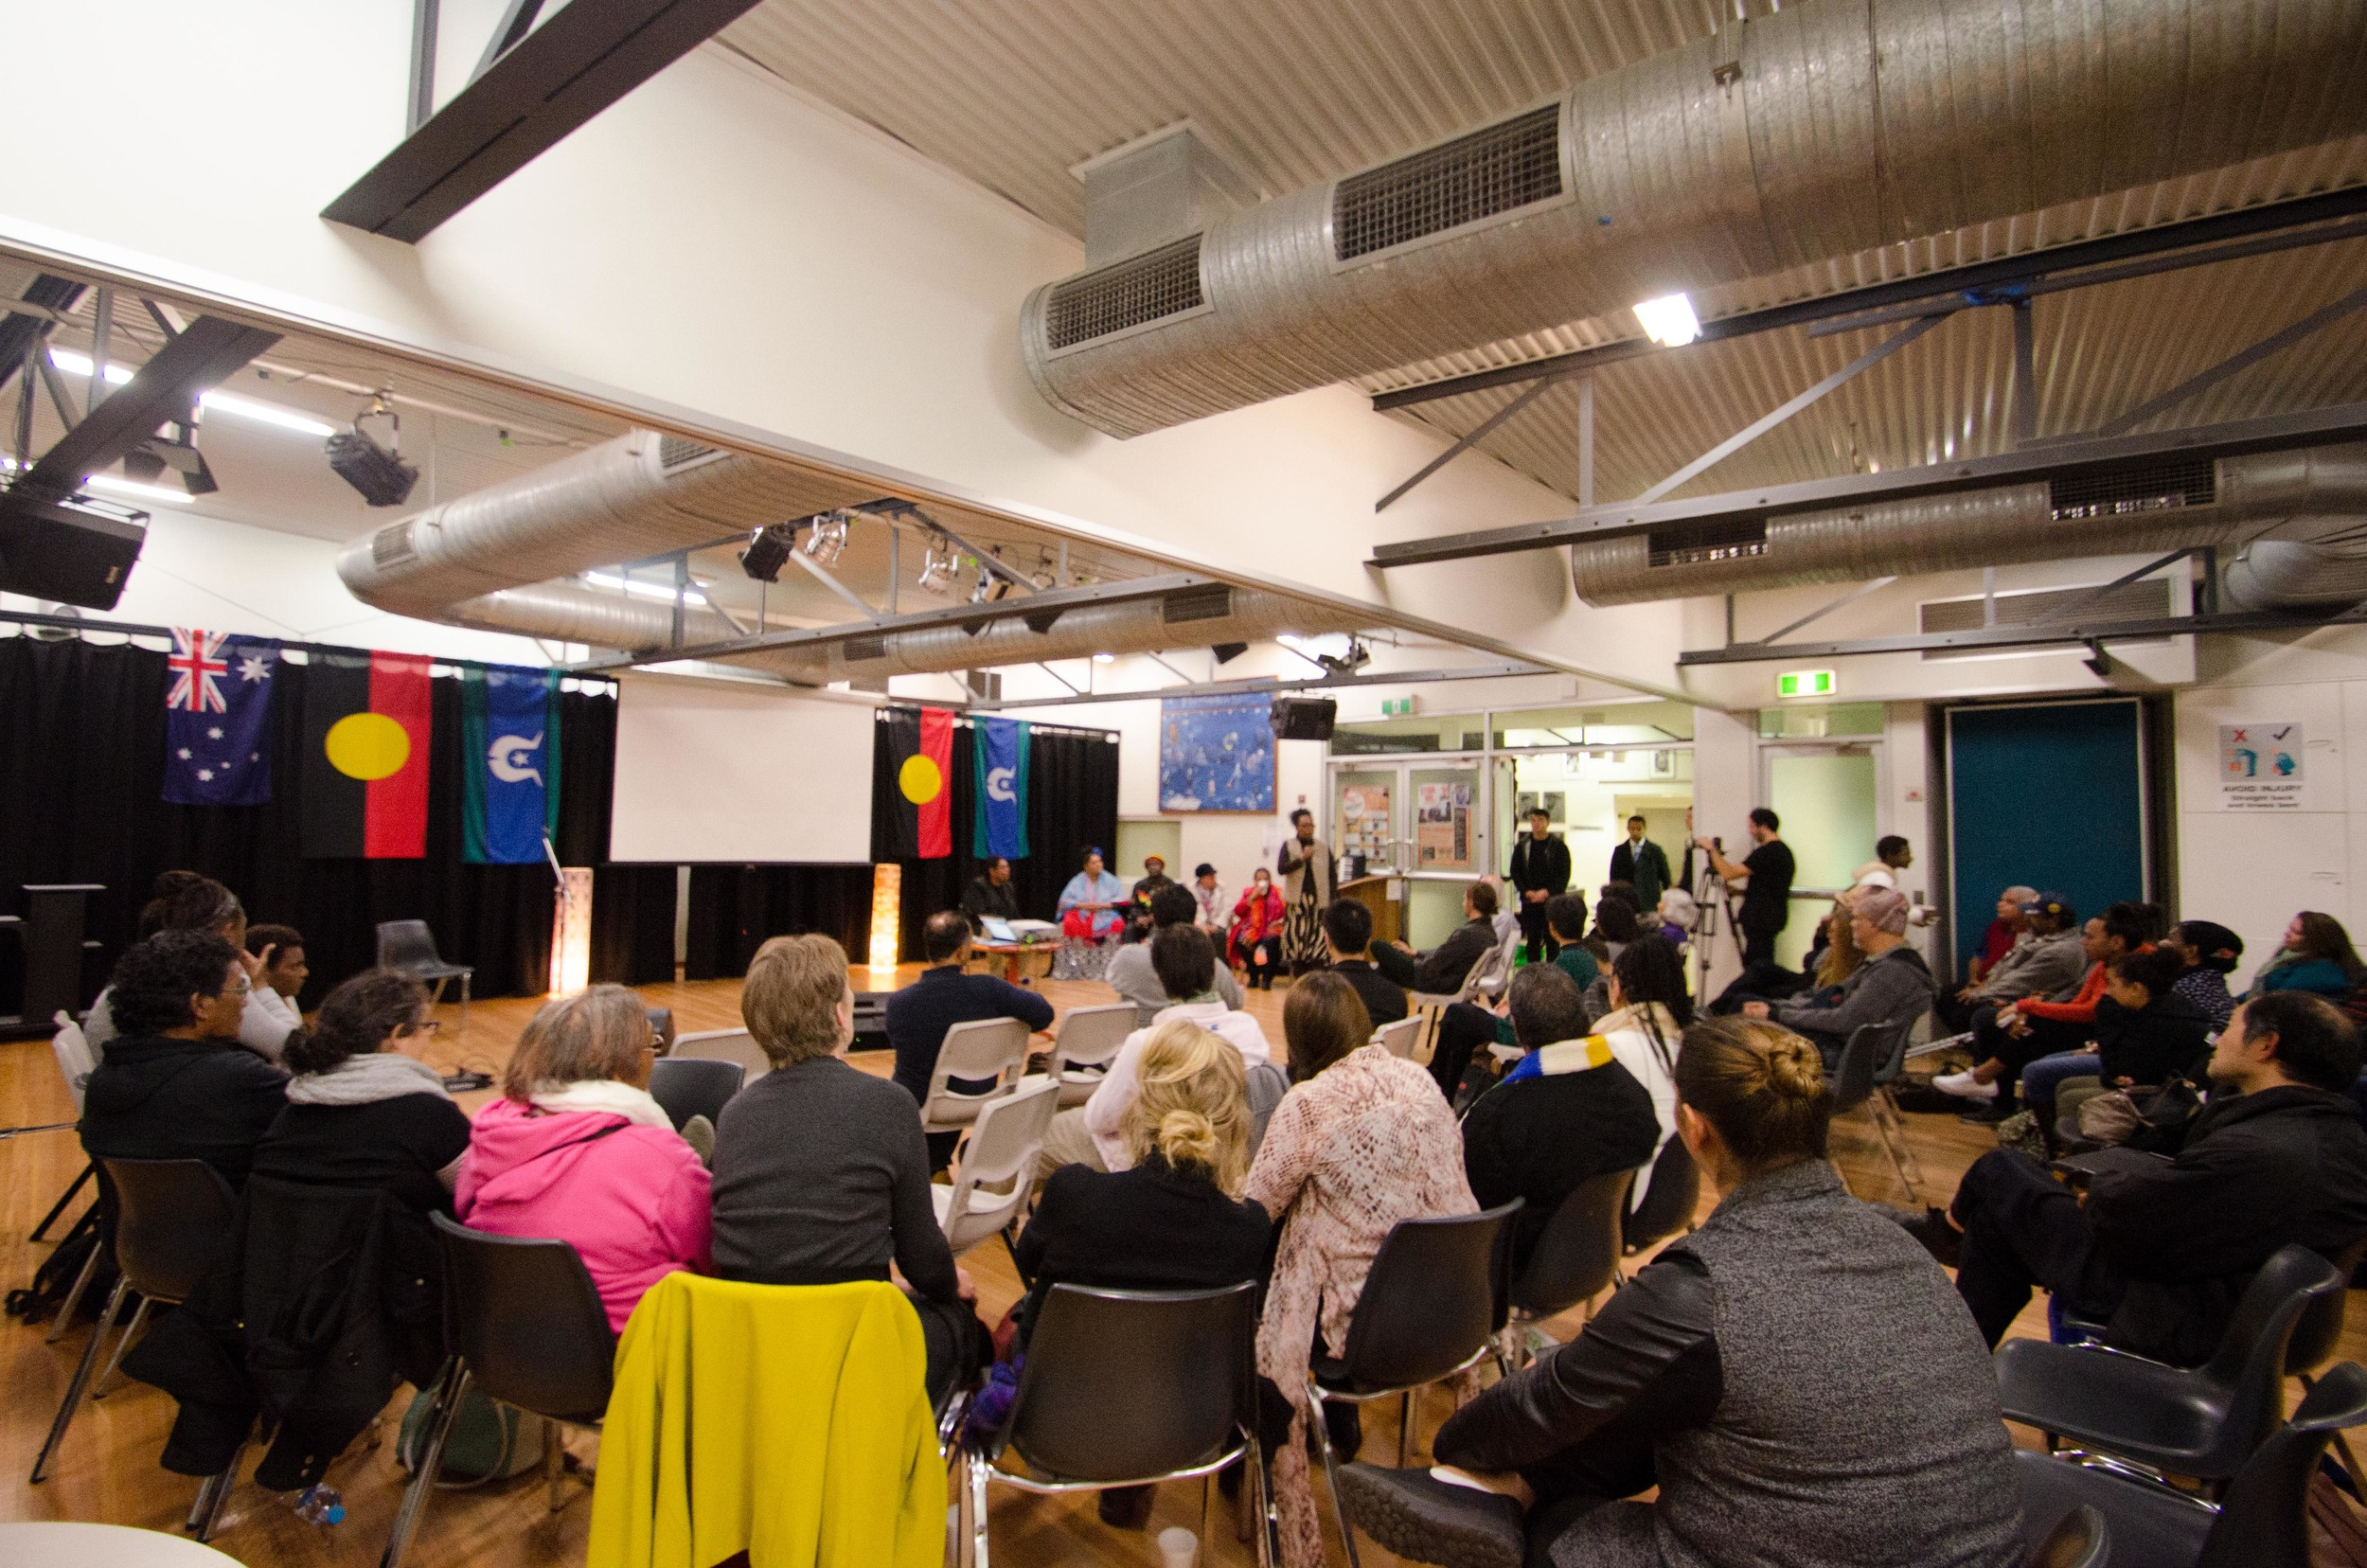 June 3rd Mabo Day at Redfern Community Centre